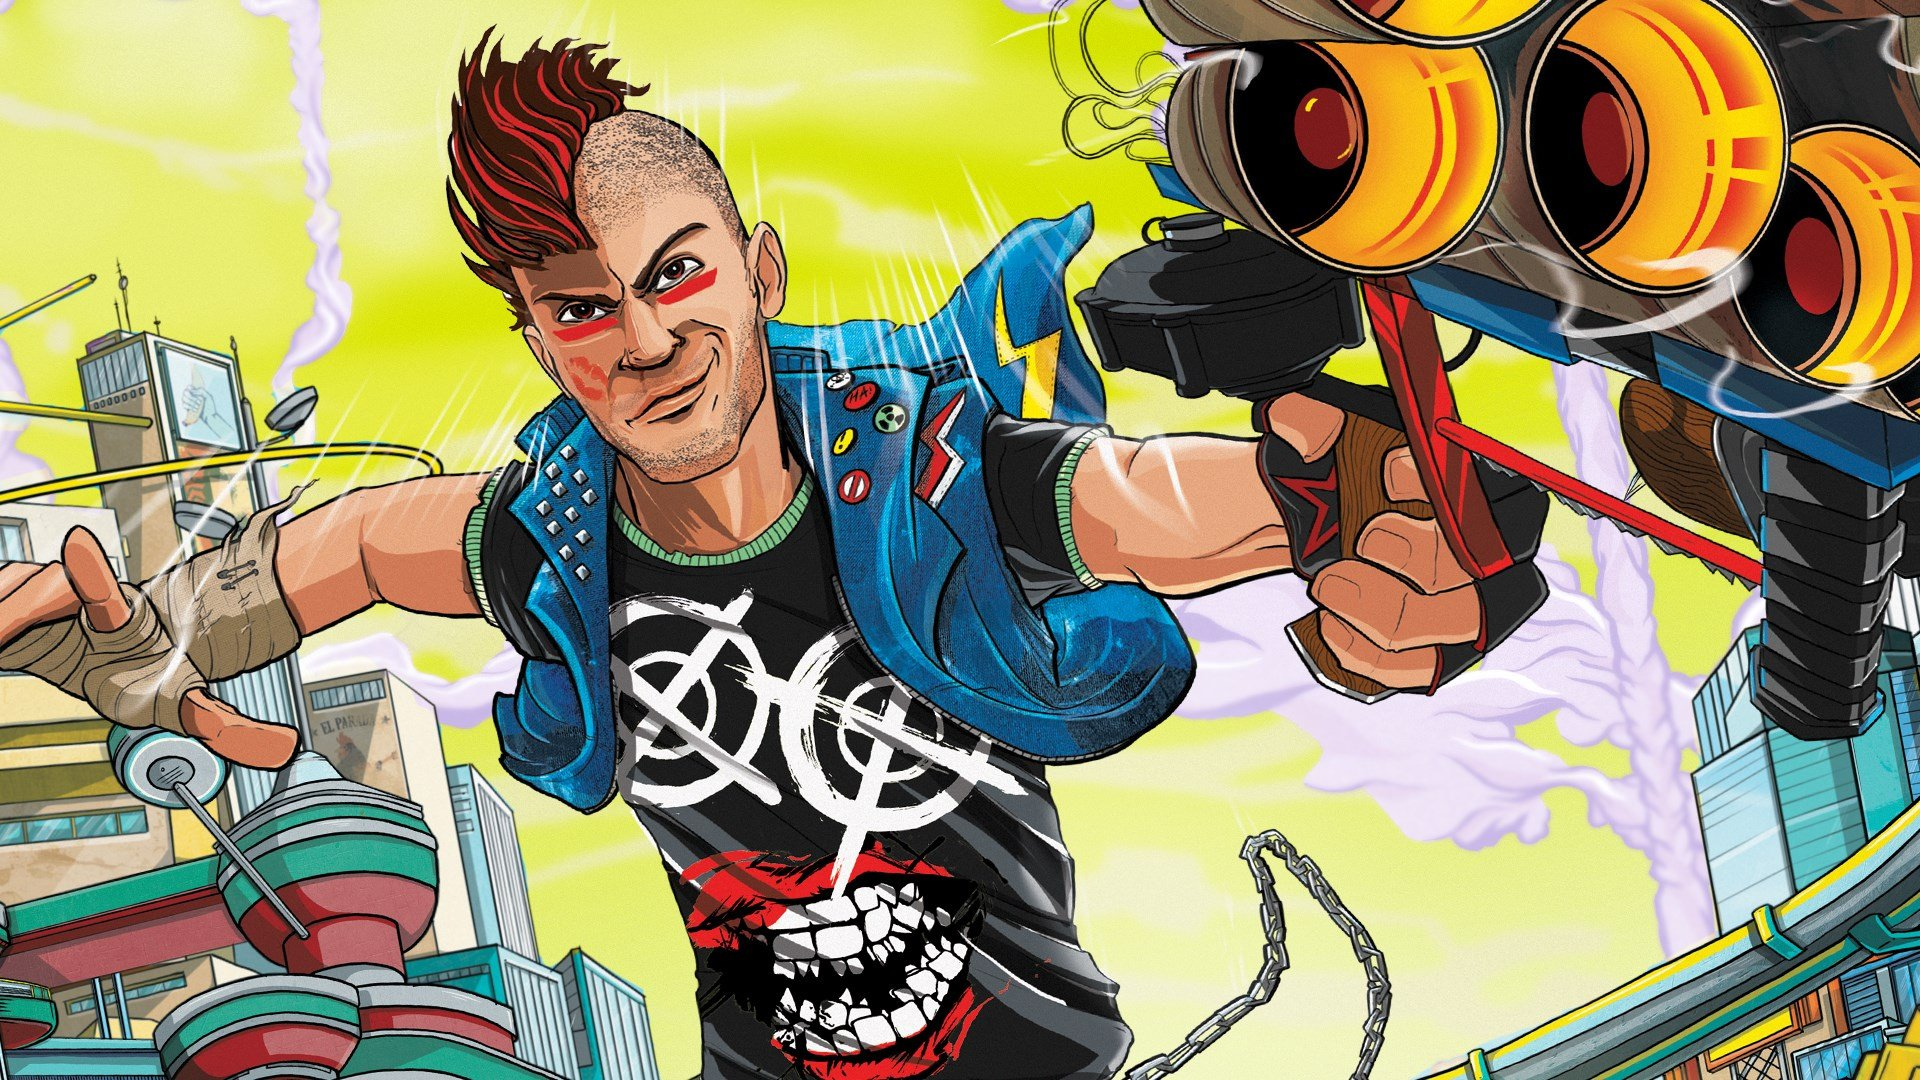 Sunset Overdrive Is Now Owned by PlayStation, Sony Confirms